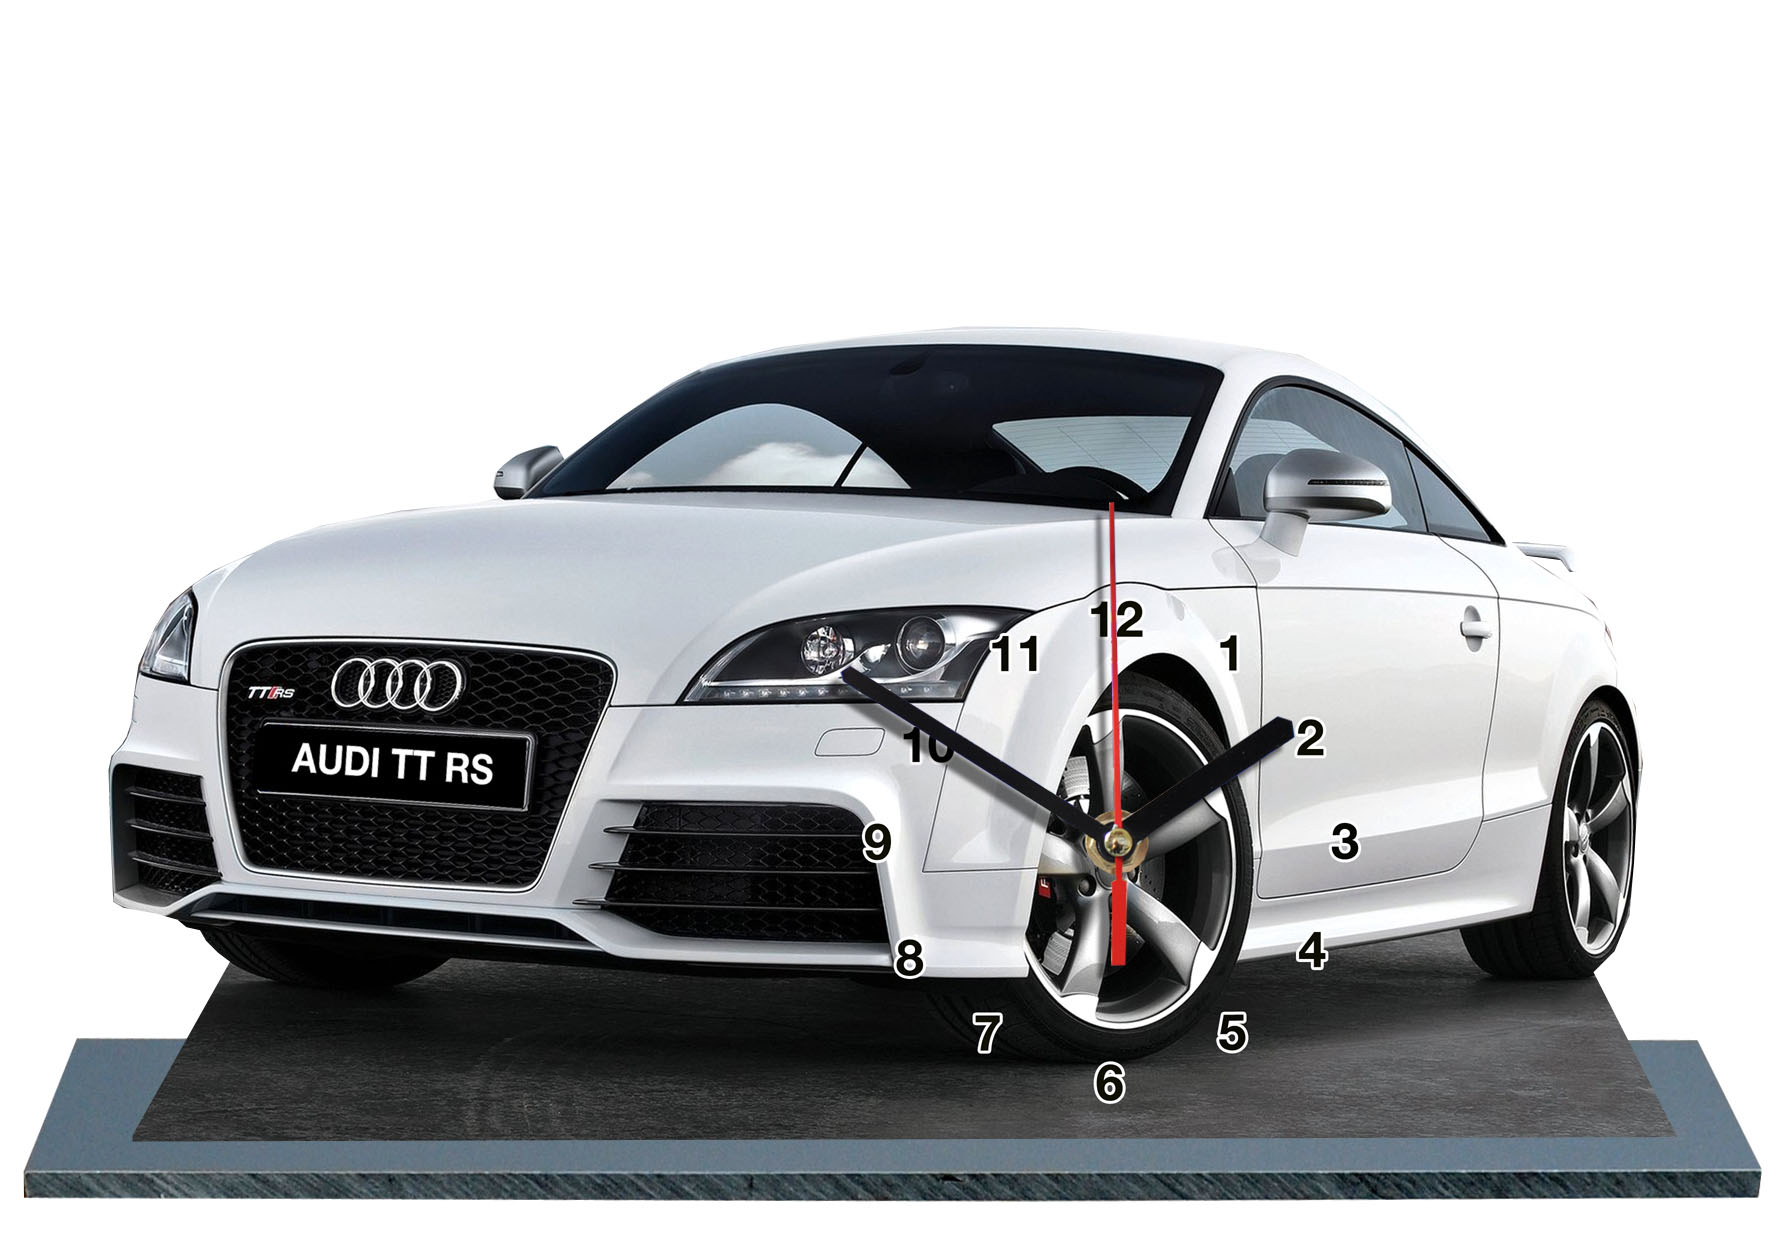 audi tt rs blanche en auto horloge miniature. Black Bedroom Furniture Sets. Home Design Ideas